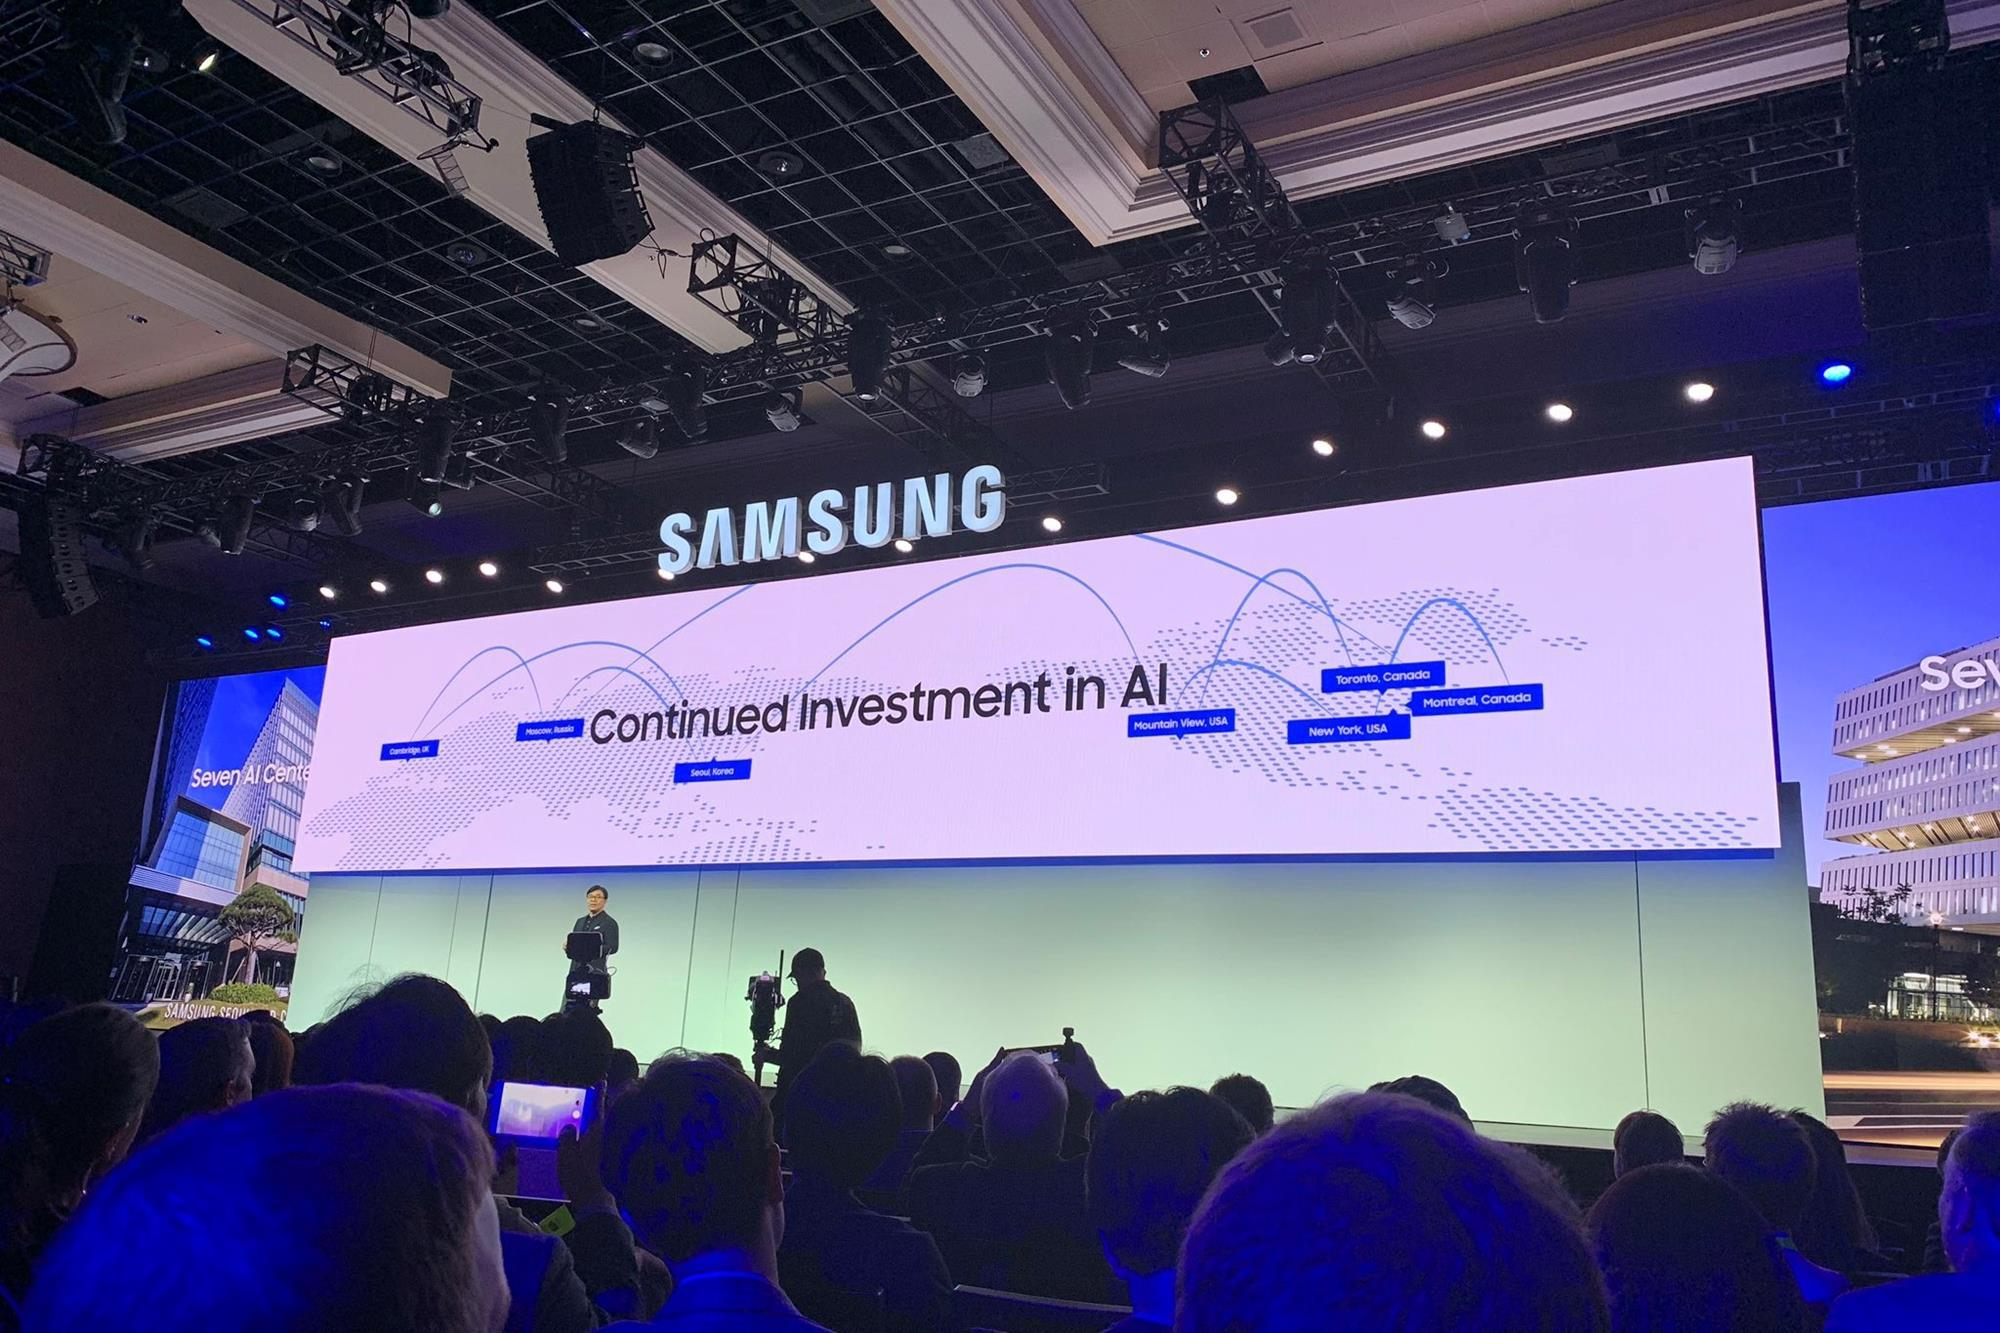 CES 2019: All about 8K, AI & connected cars | Industry Trends | IBC